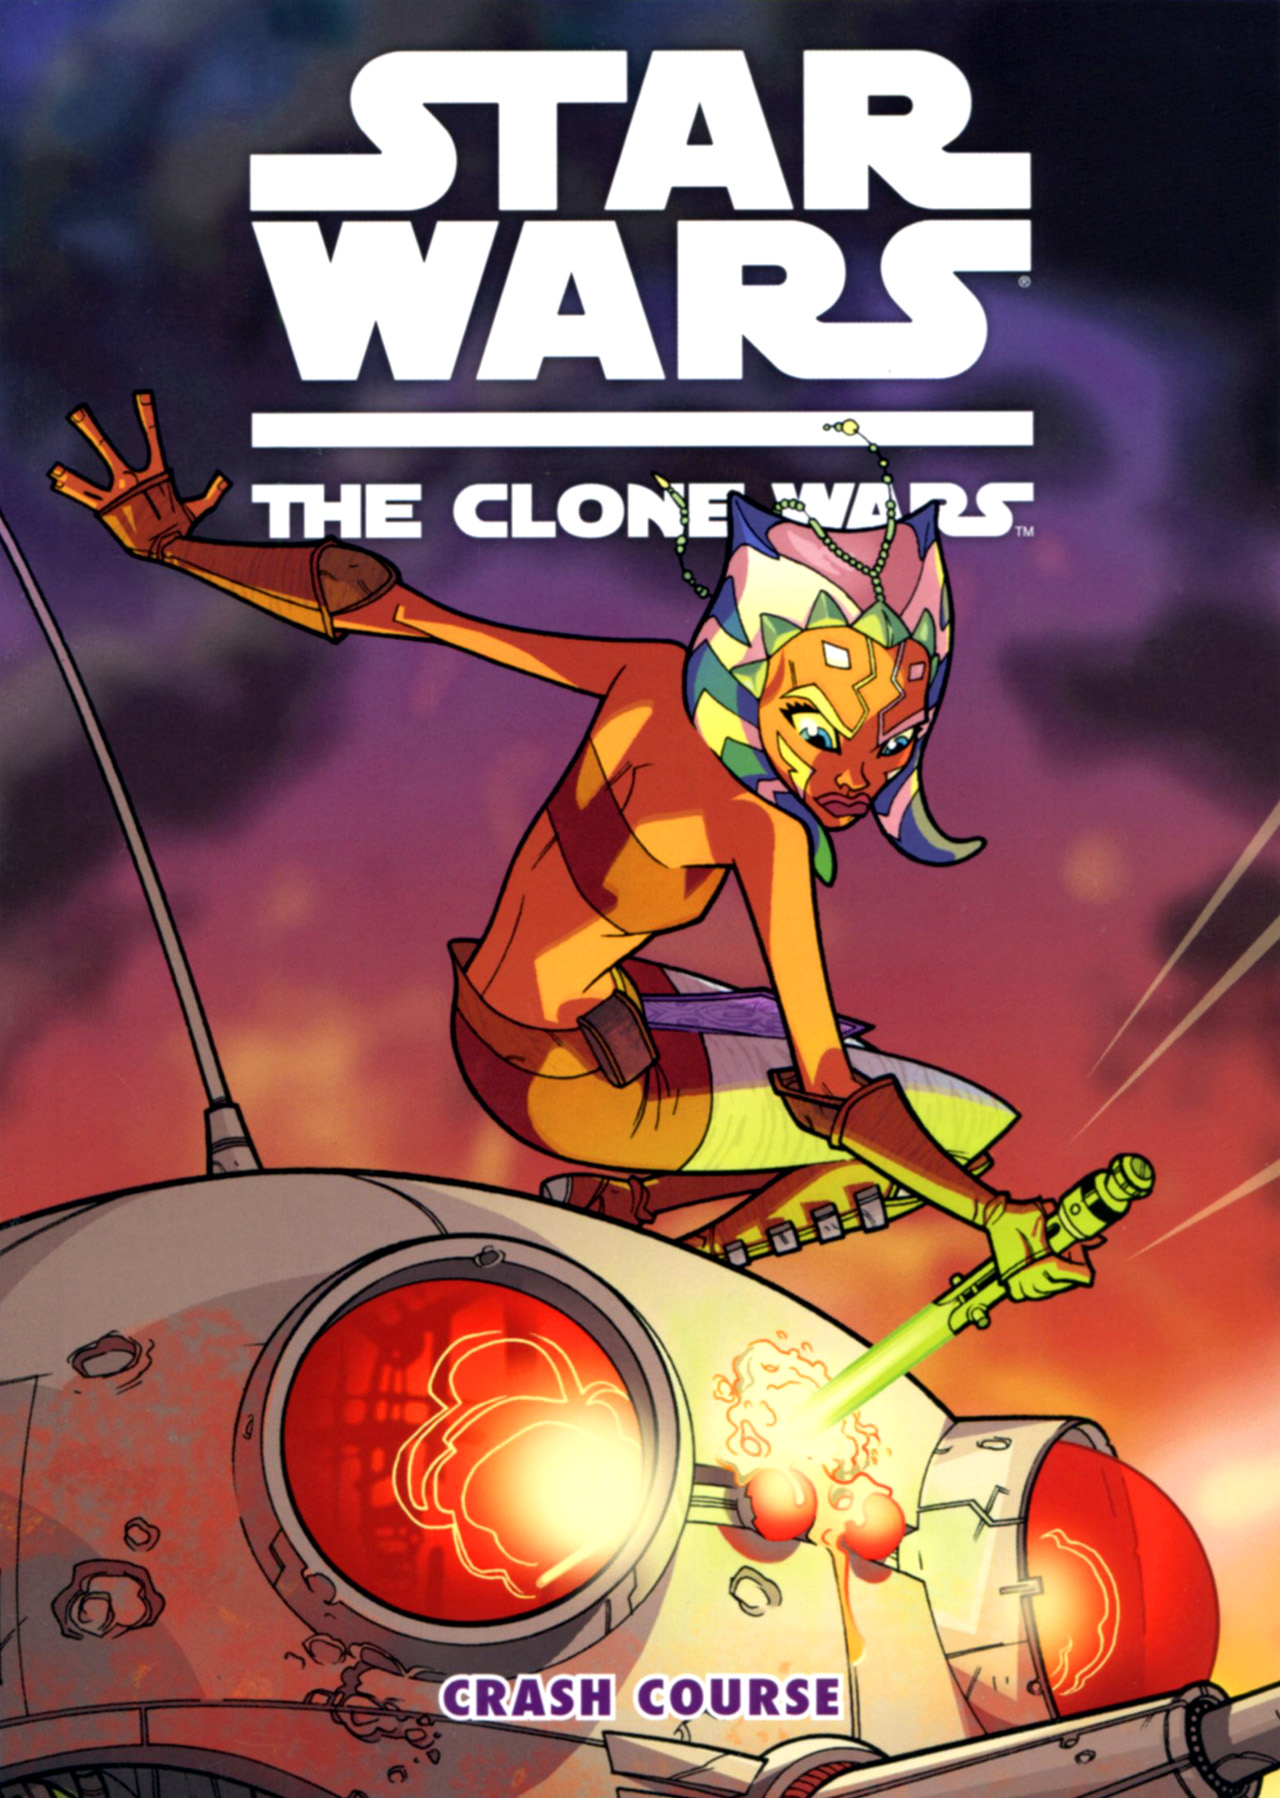 Read online Star Wars: The Clone Wars - Crash Course comic -  Issue # Full - 1